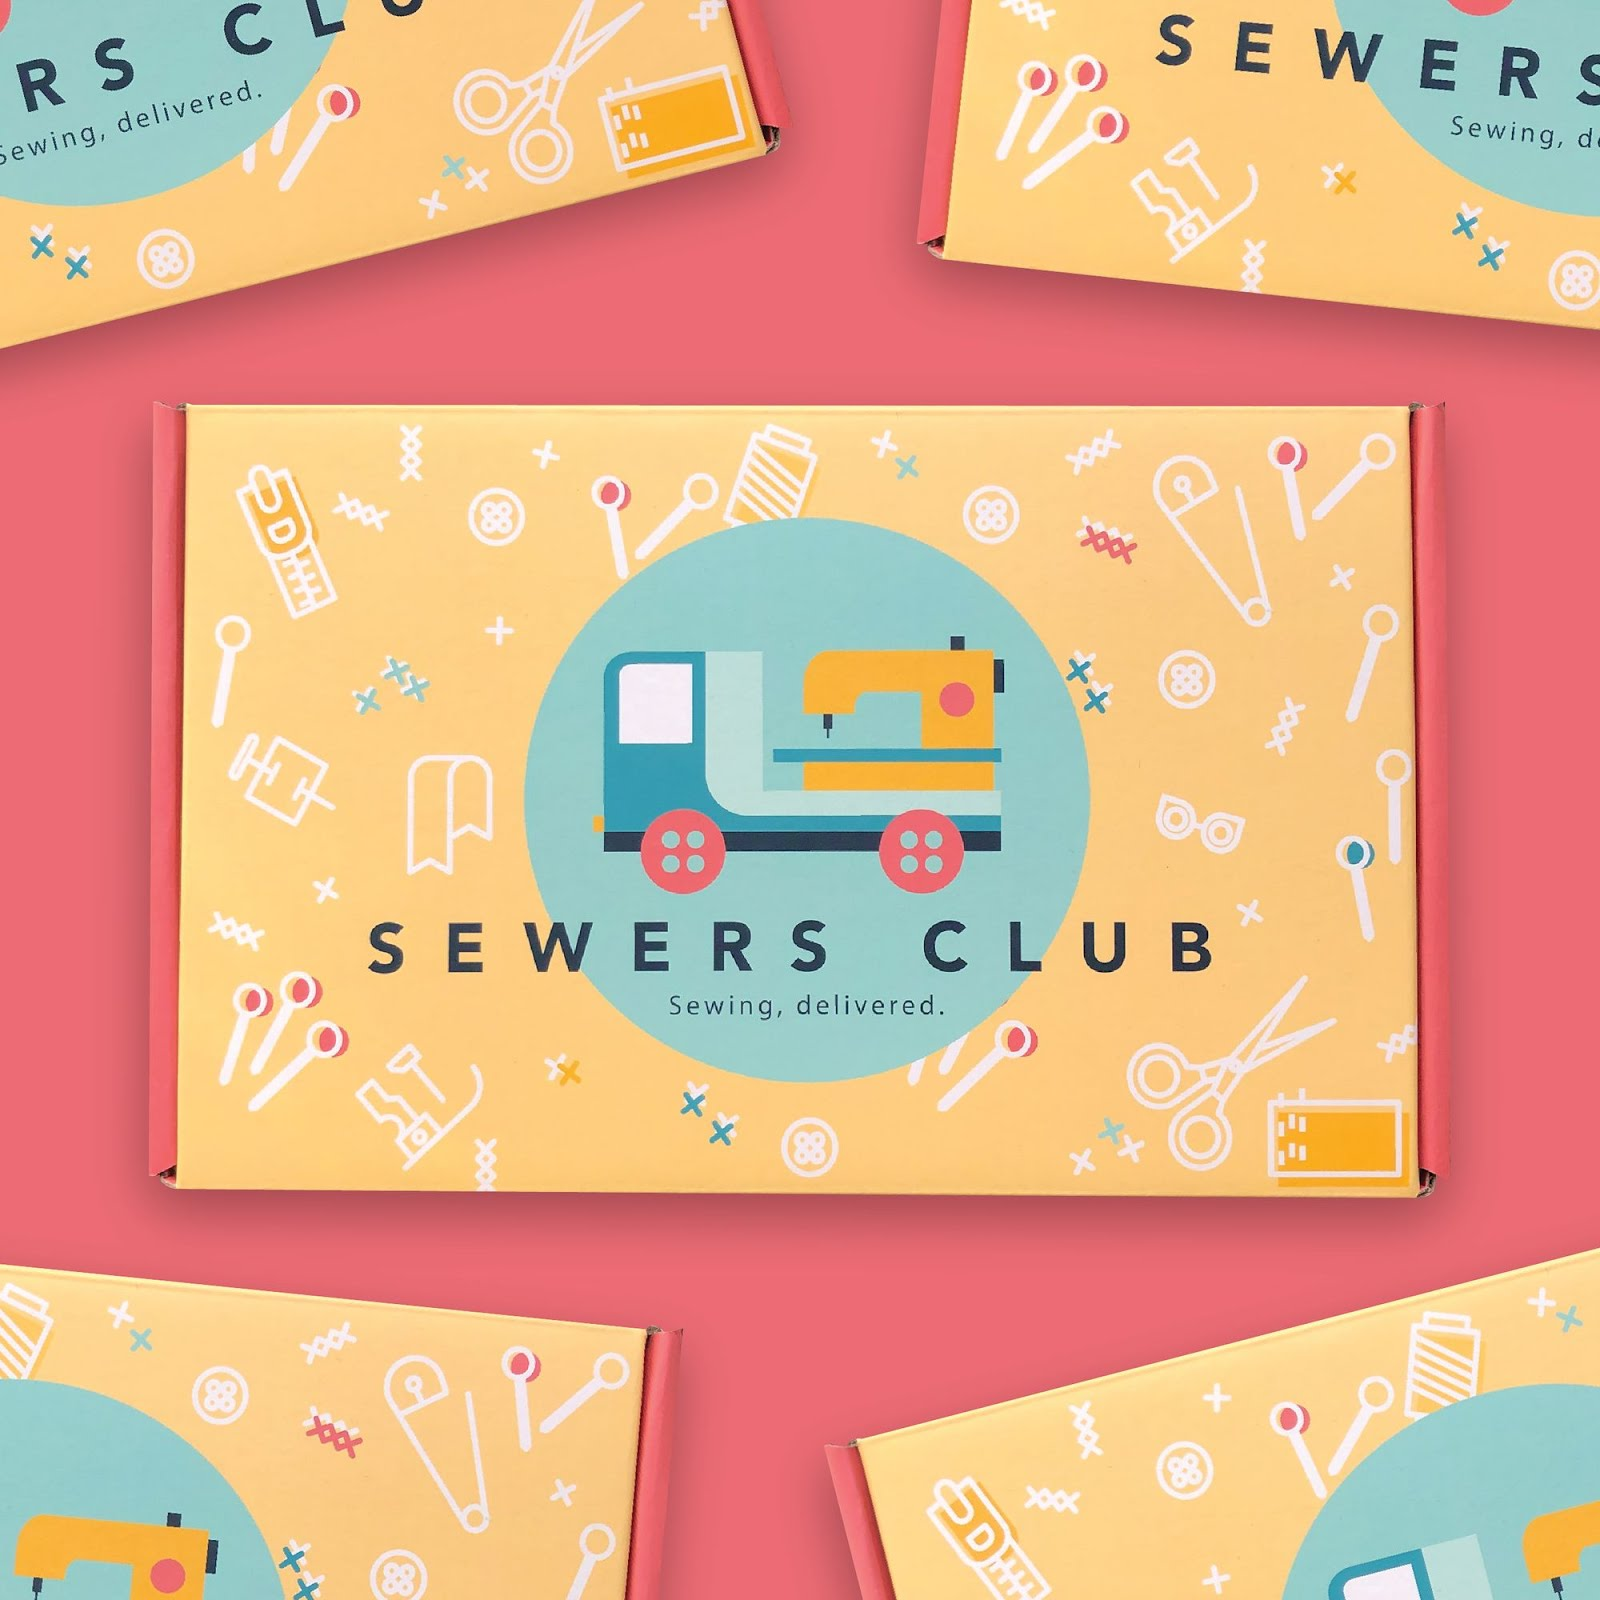 SEWERS CLUB